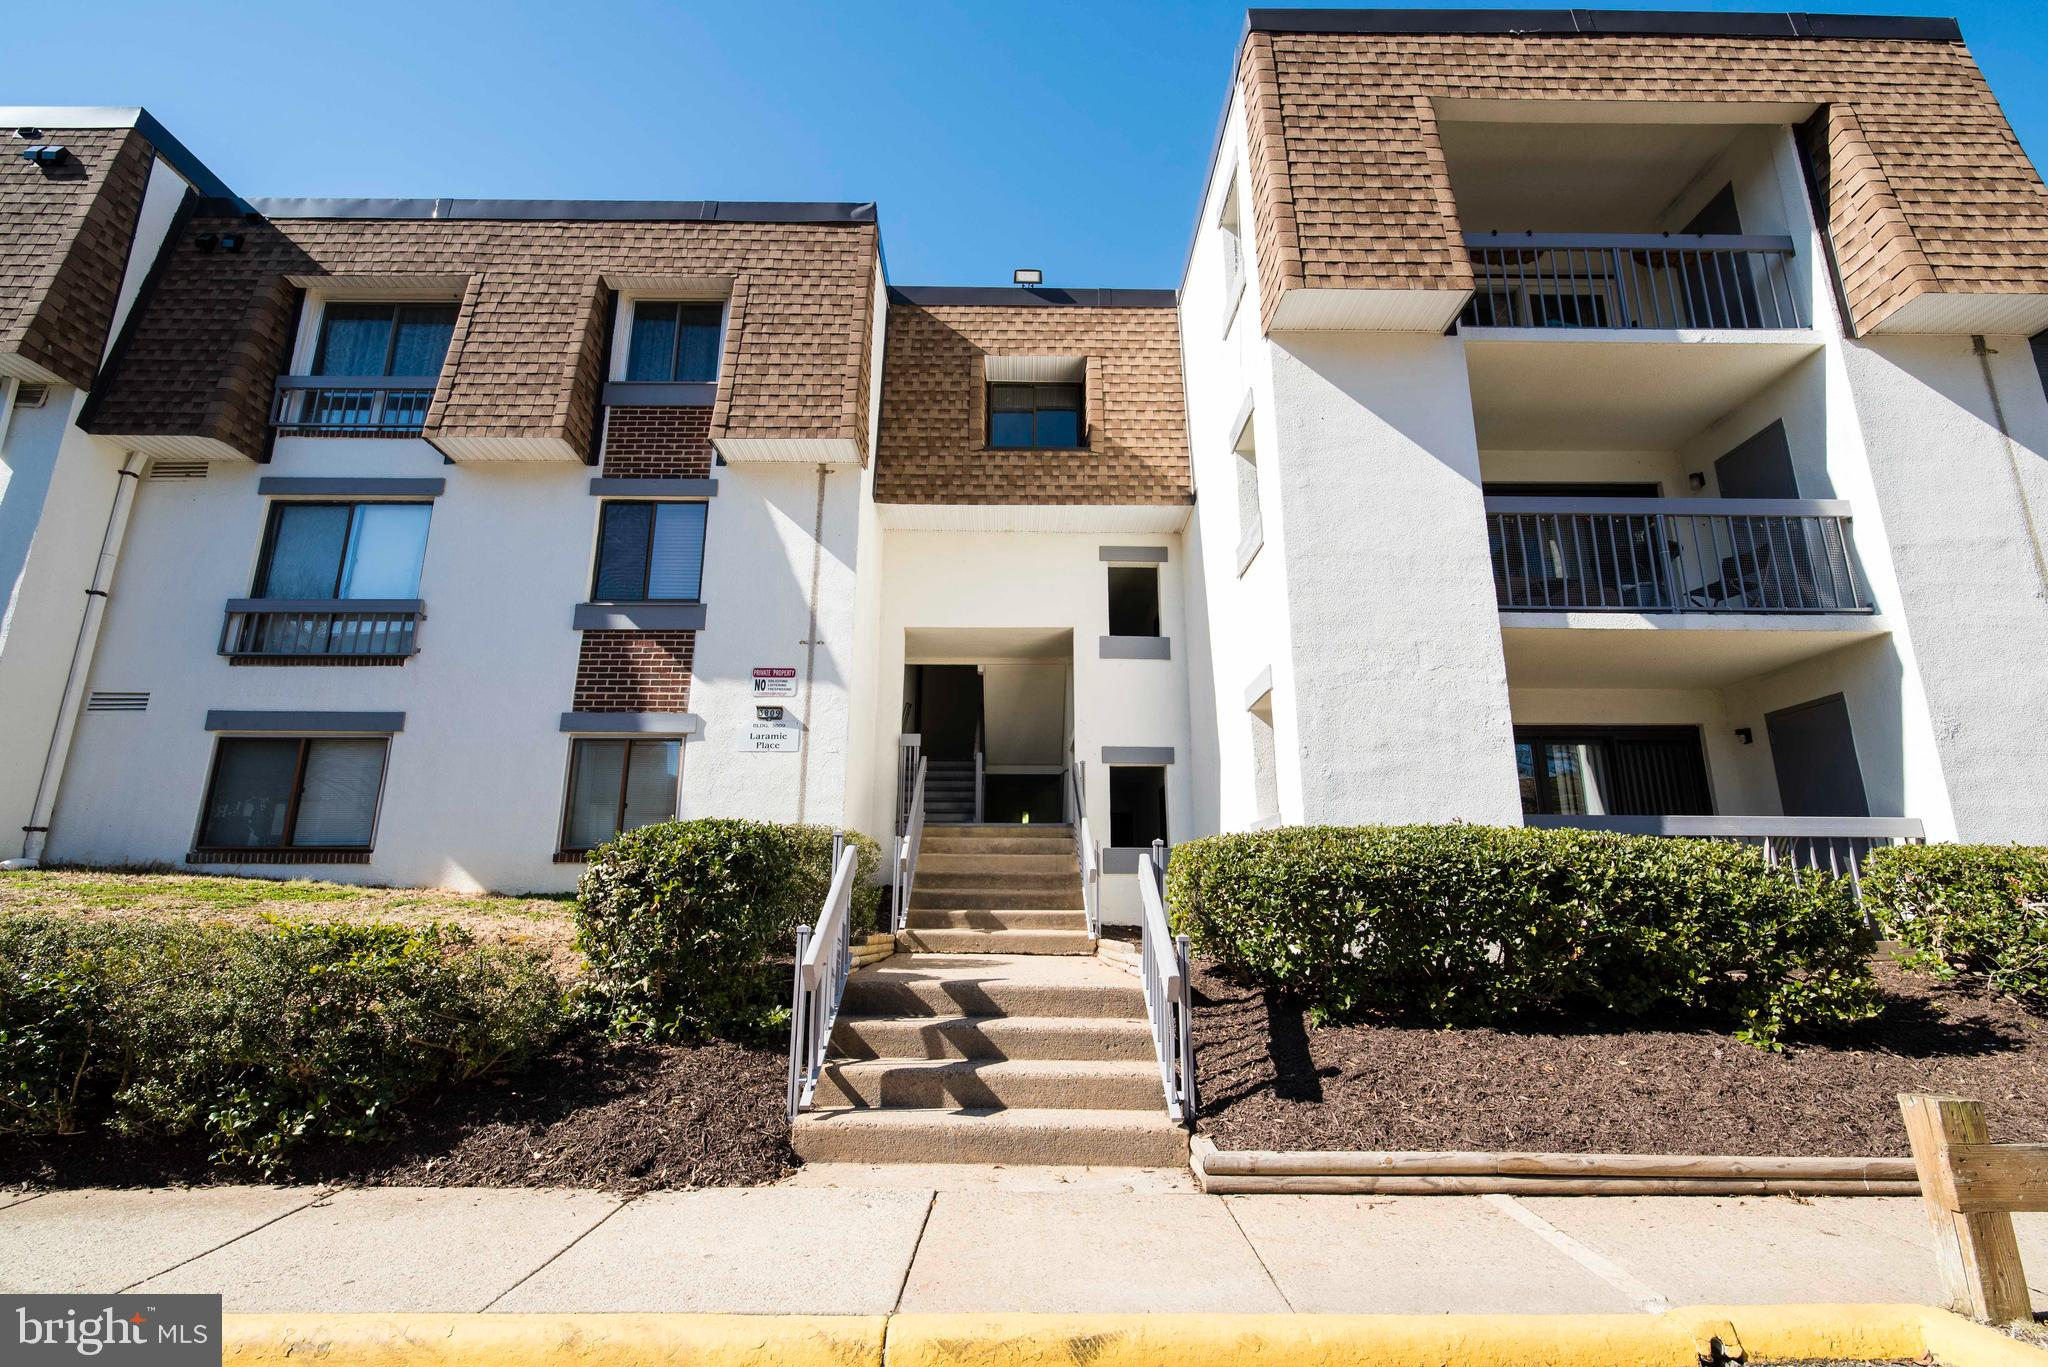 Highly desired Penthouse level condo at the Sequoyah! 2 beds and 1.5 baths on over 950 sq ft, garden